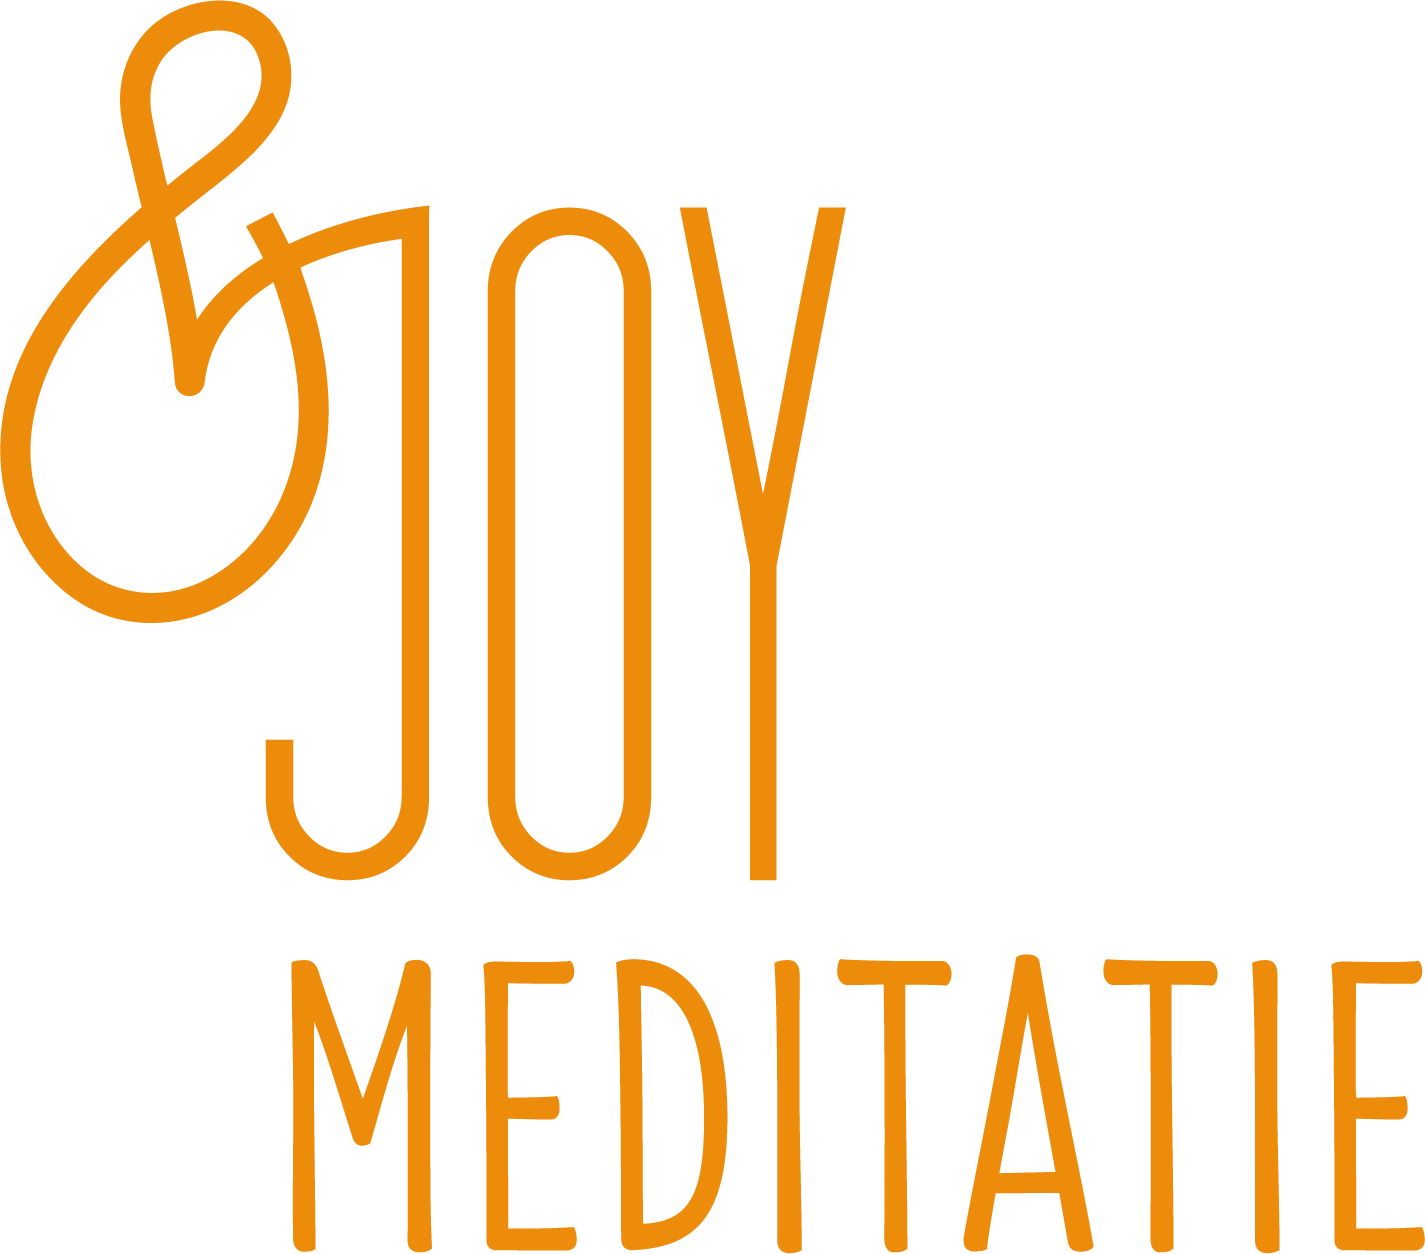 JOY titellogo MEDITATIE WEB